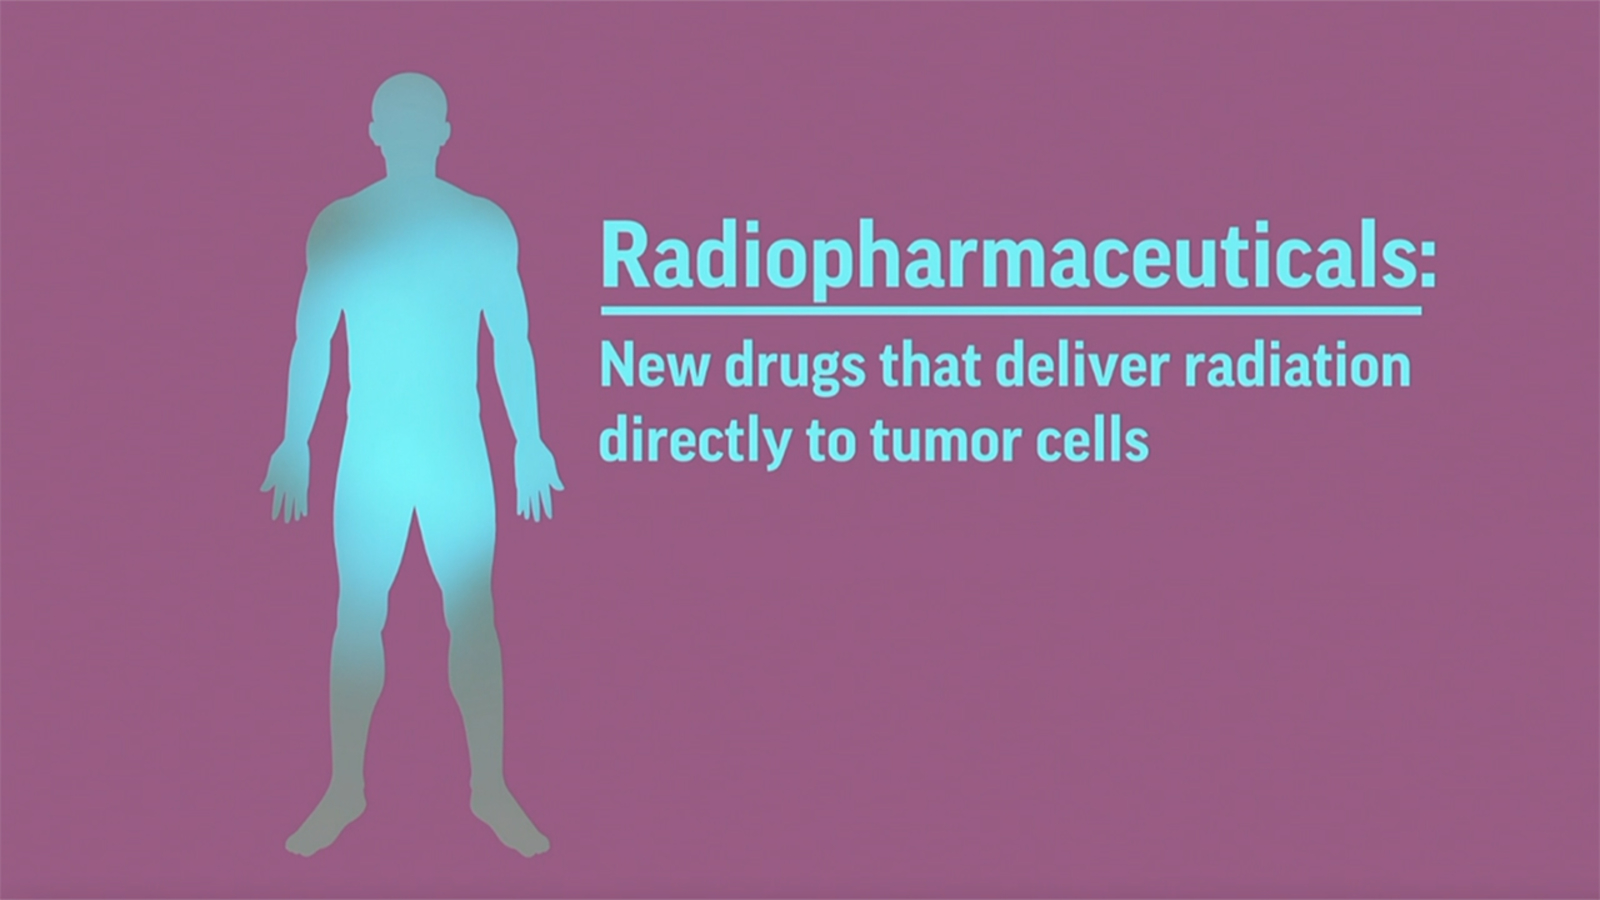 Doctors report improved prostate cancer survival rates from radiation drug that kills tumor cells